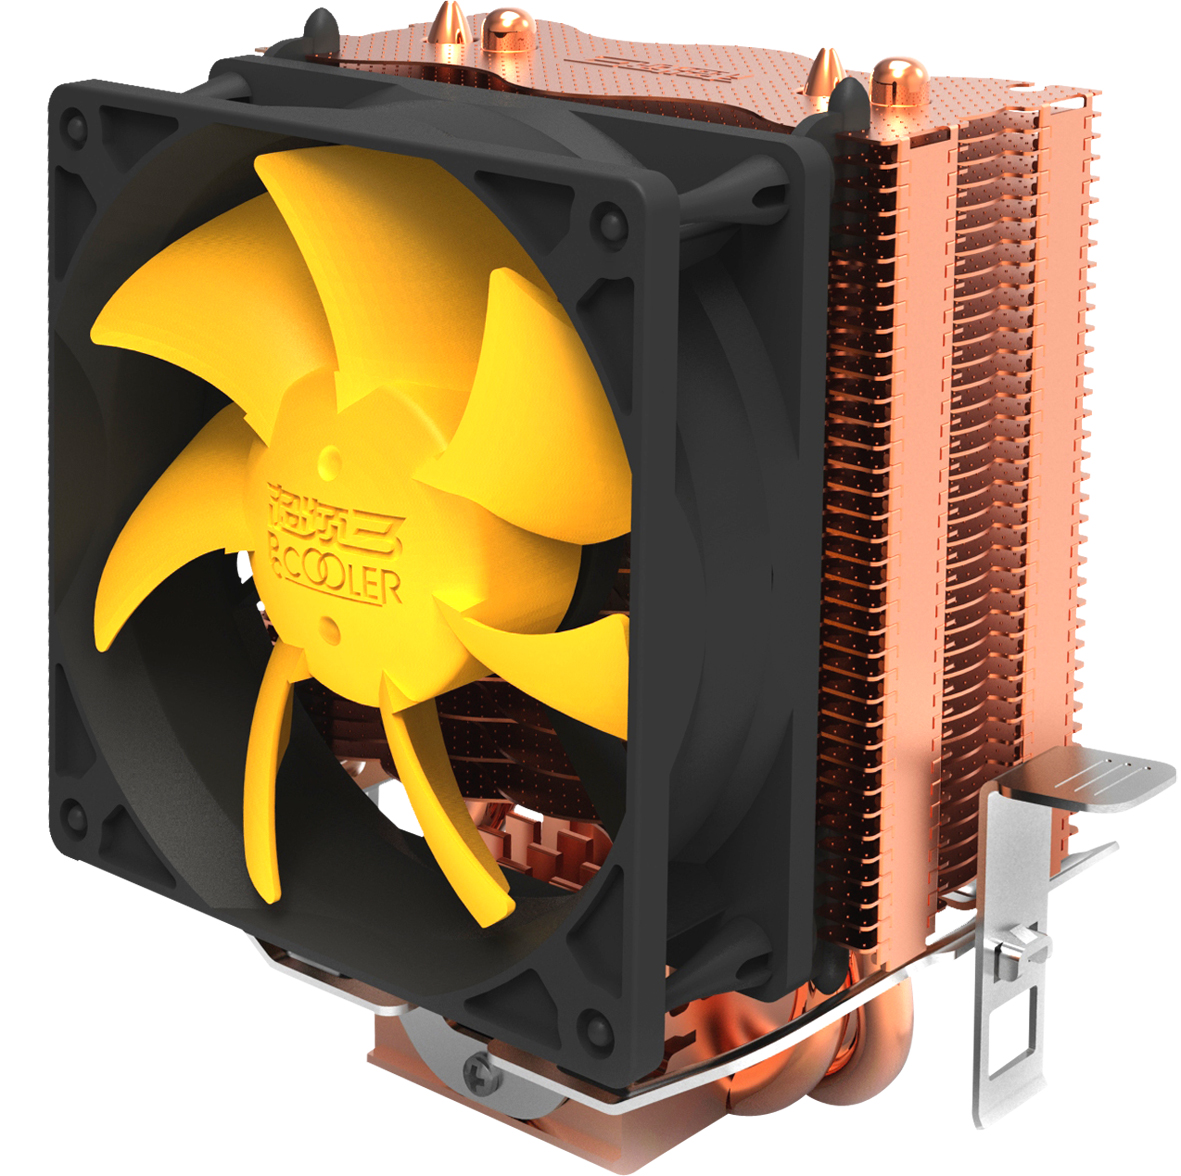 PCcooler S83 cpu cooler Copper plating fins 2 heatpipes 80mm 8cm silent fan CPU cooling radiator fan for AMD Intel 775 1155 1156 computer cooler radiator with heatsink heatpipe cooling fan for hd6970 hd6950 grahics card vga cooler